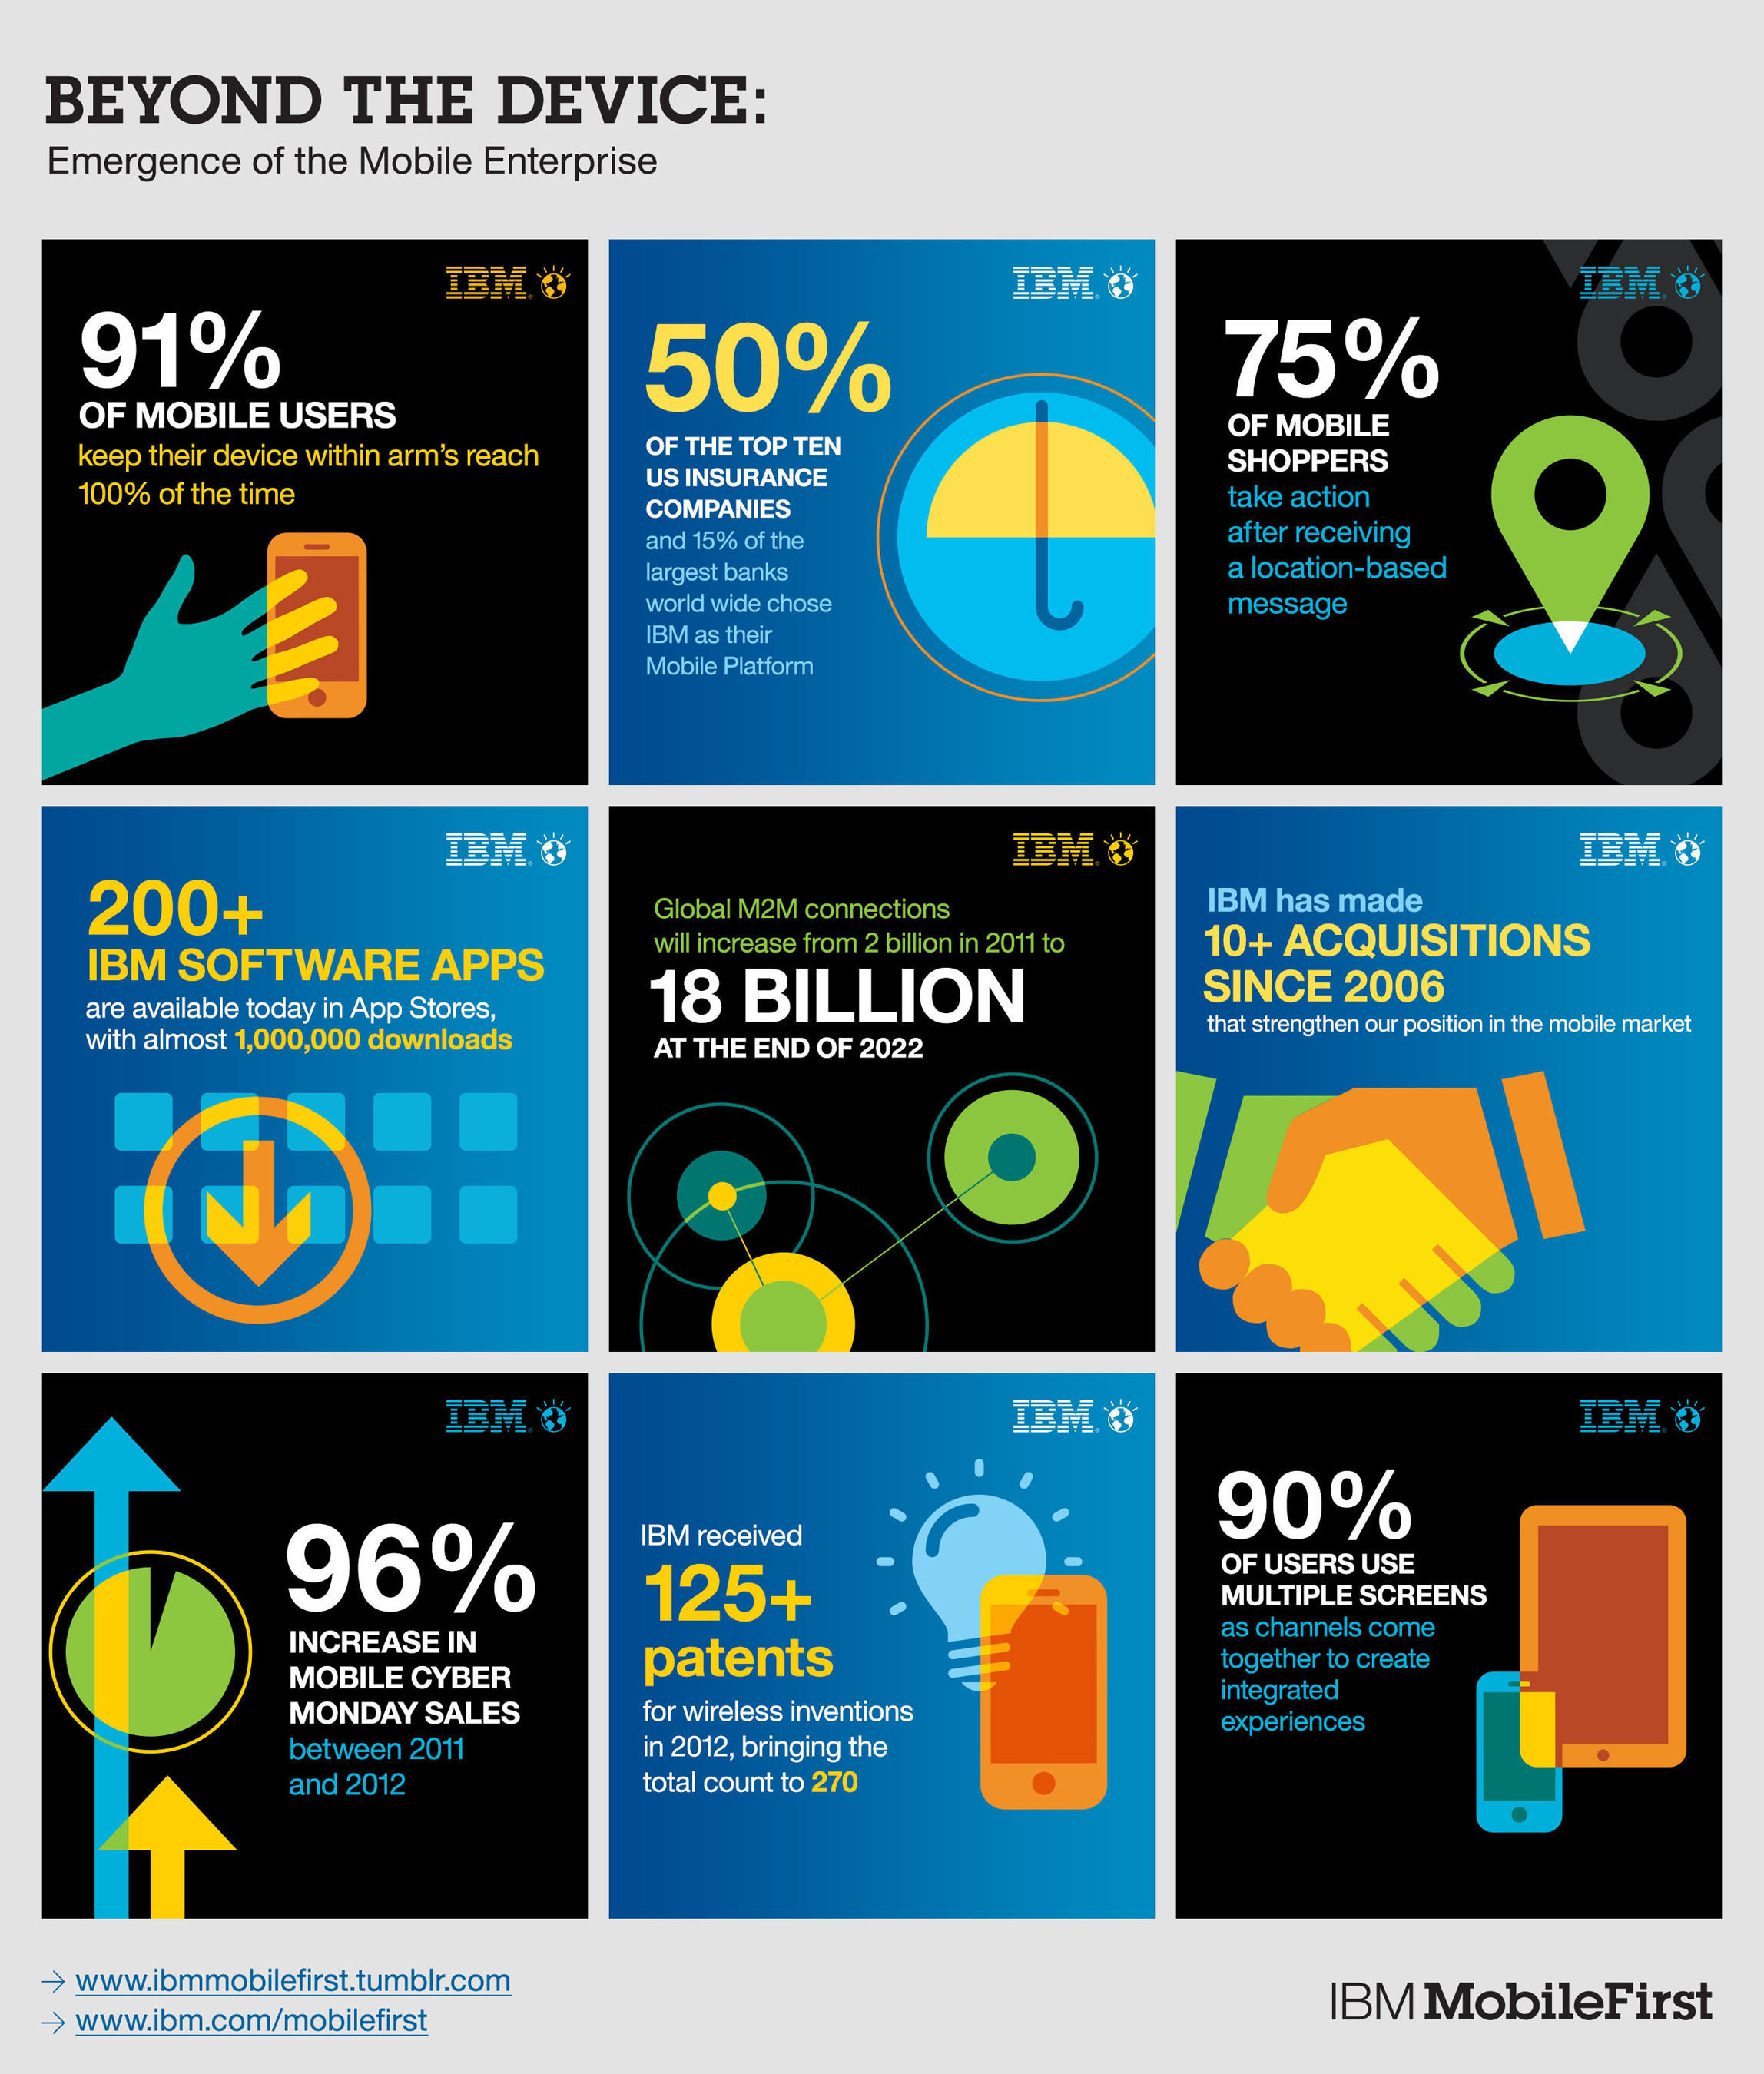 This infographic showcases compelling statistics that demonstrate the growth of the mobile enterprise and IBM's MobileFirst initiative.  (PRNewsFoto/IBM)